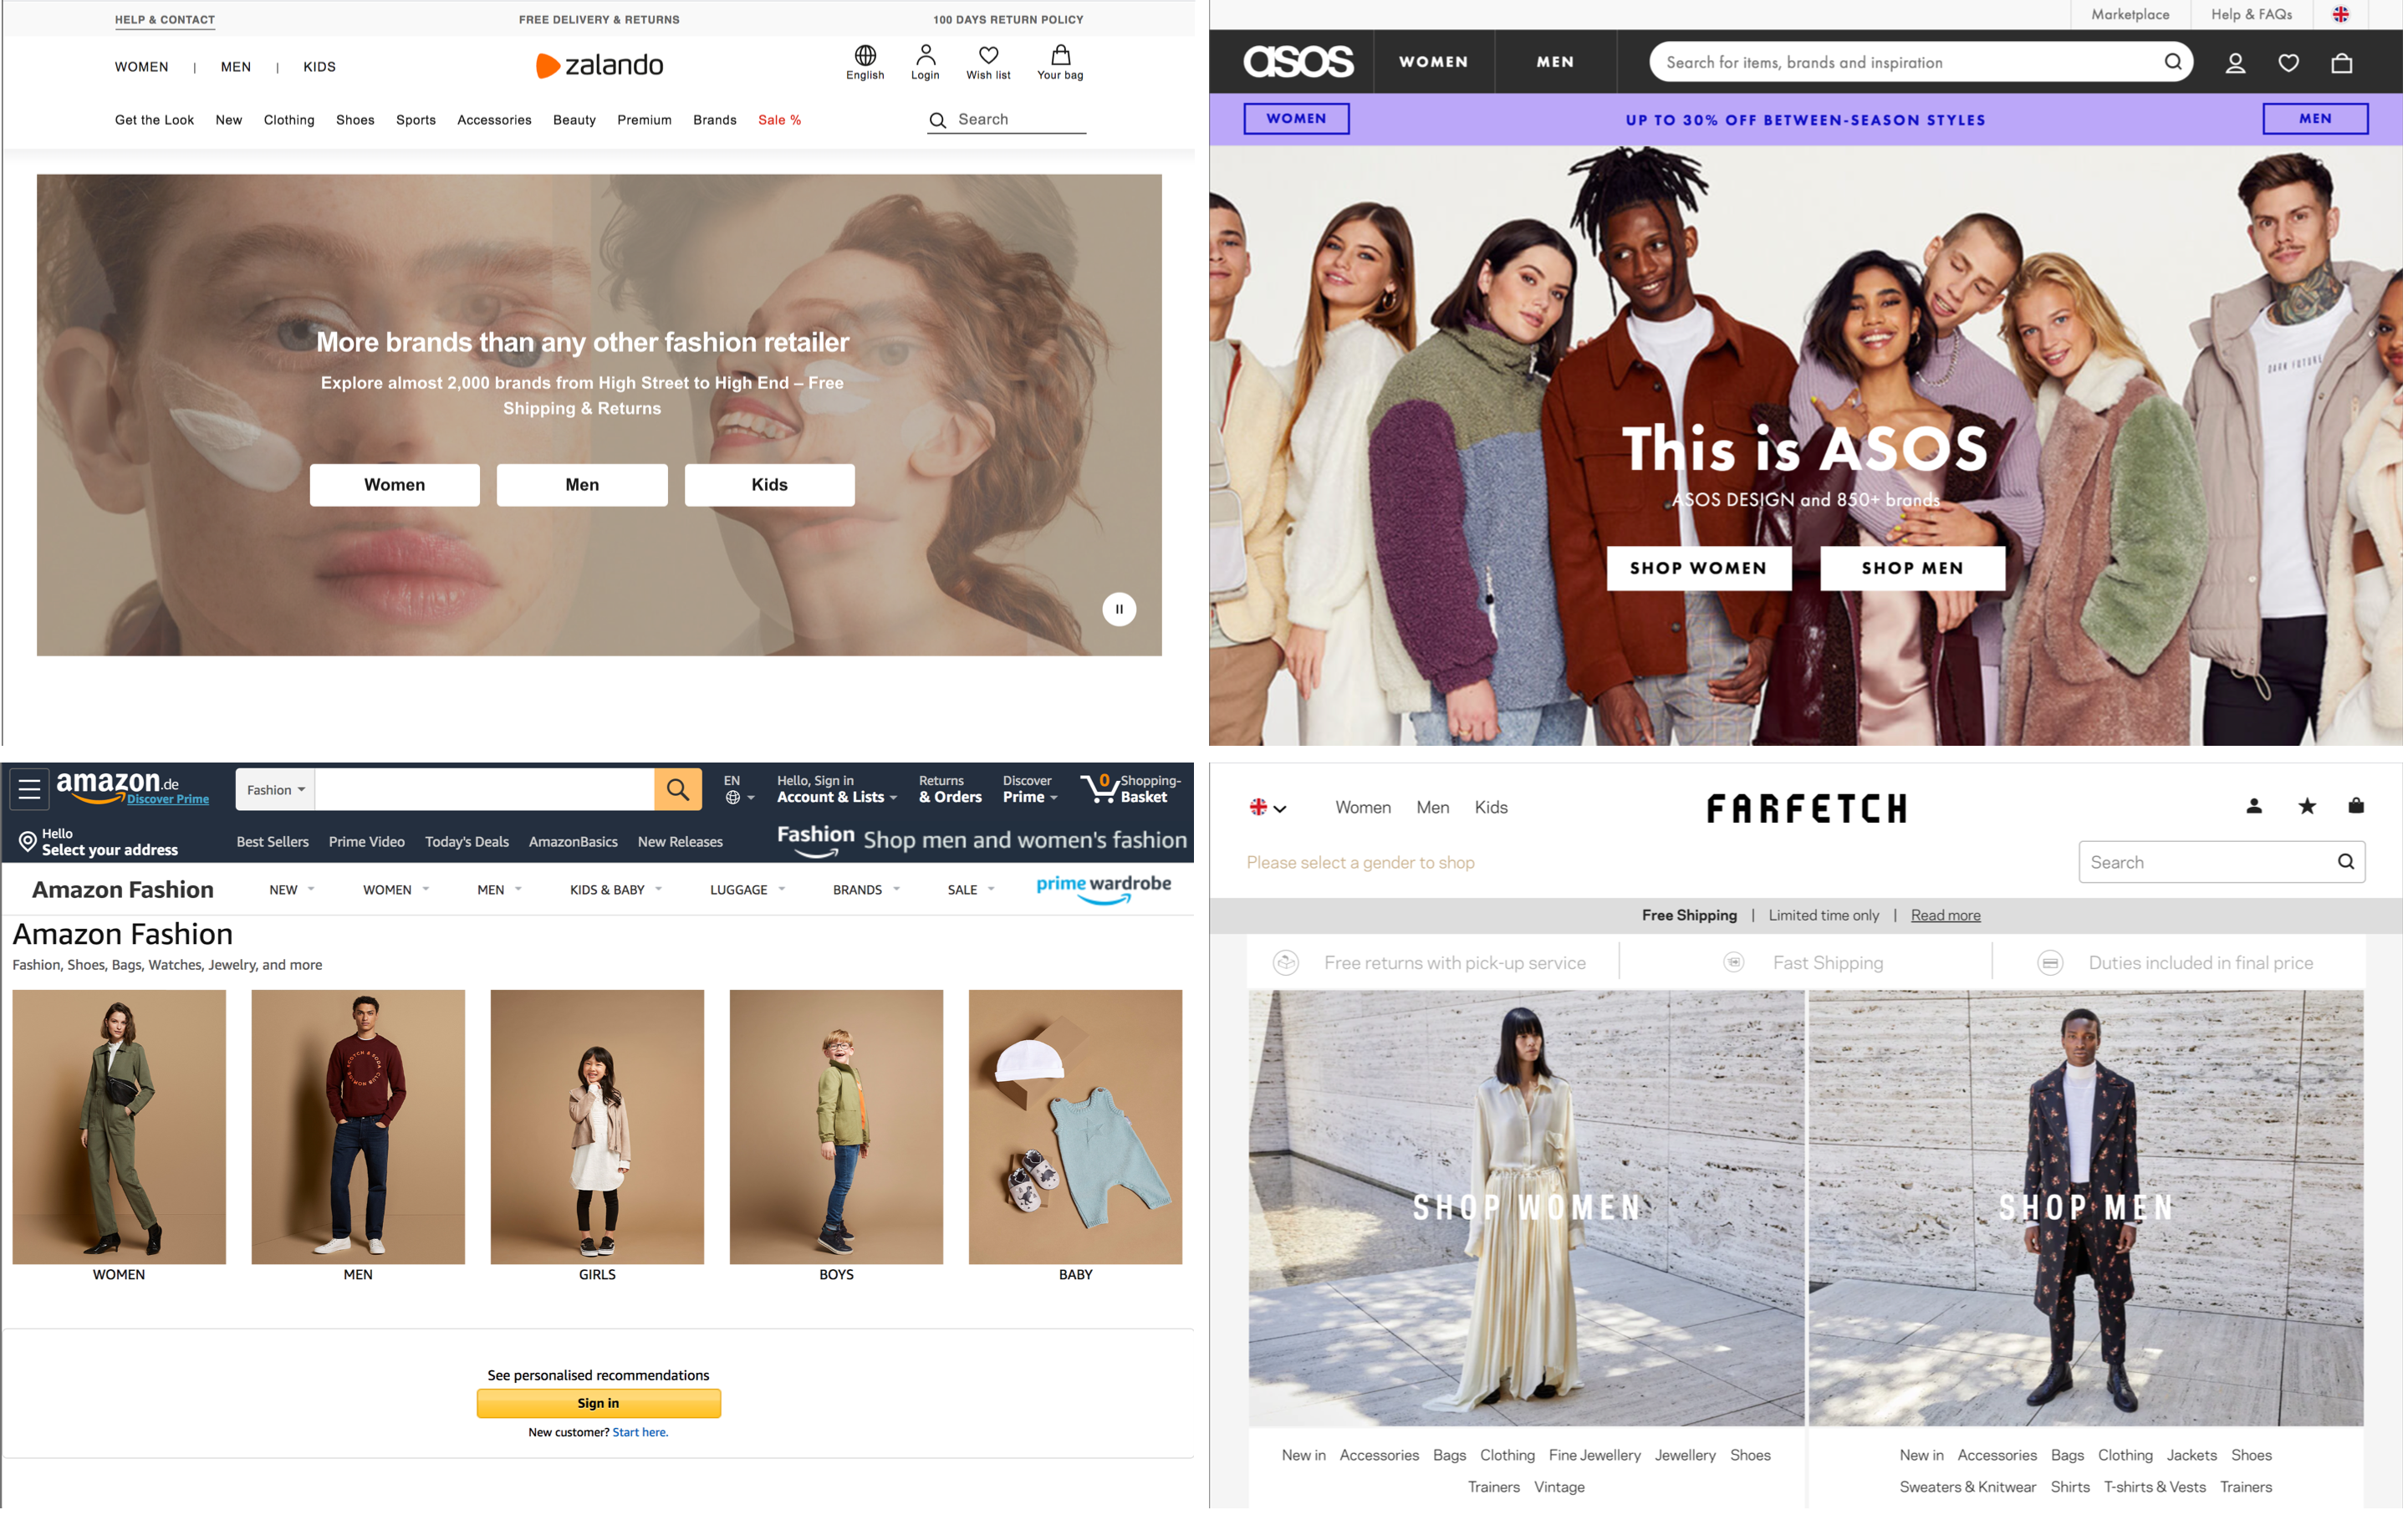 Screenshots of the homepages of four leading fashion websites, all categorized by mens and womens clothing